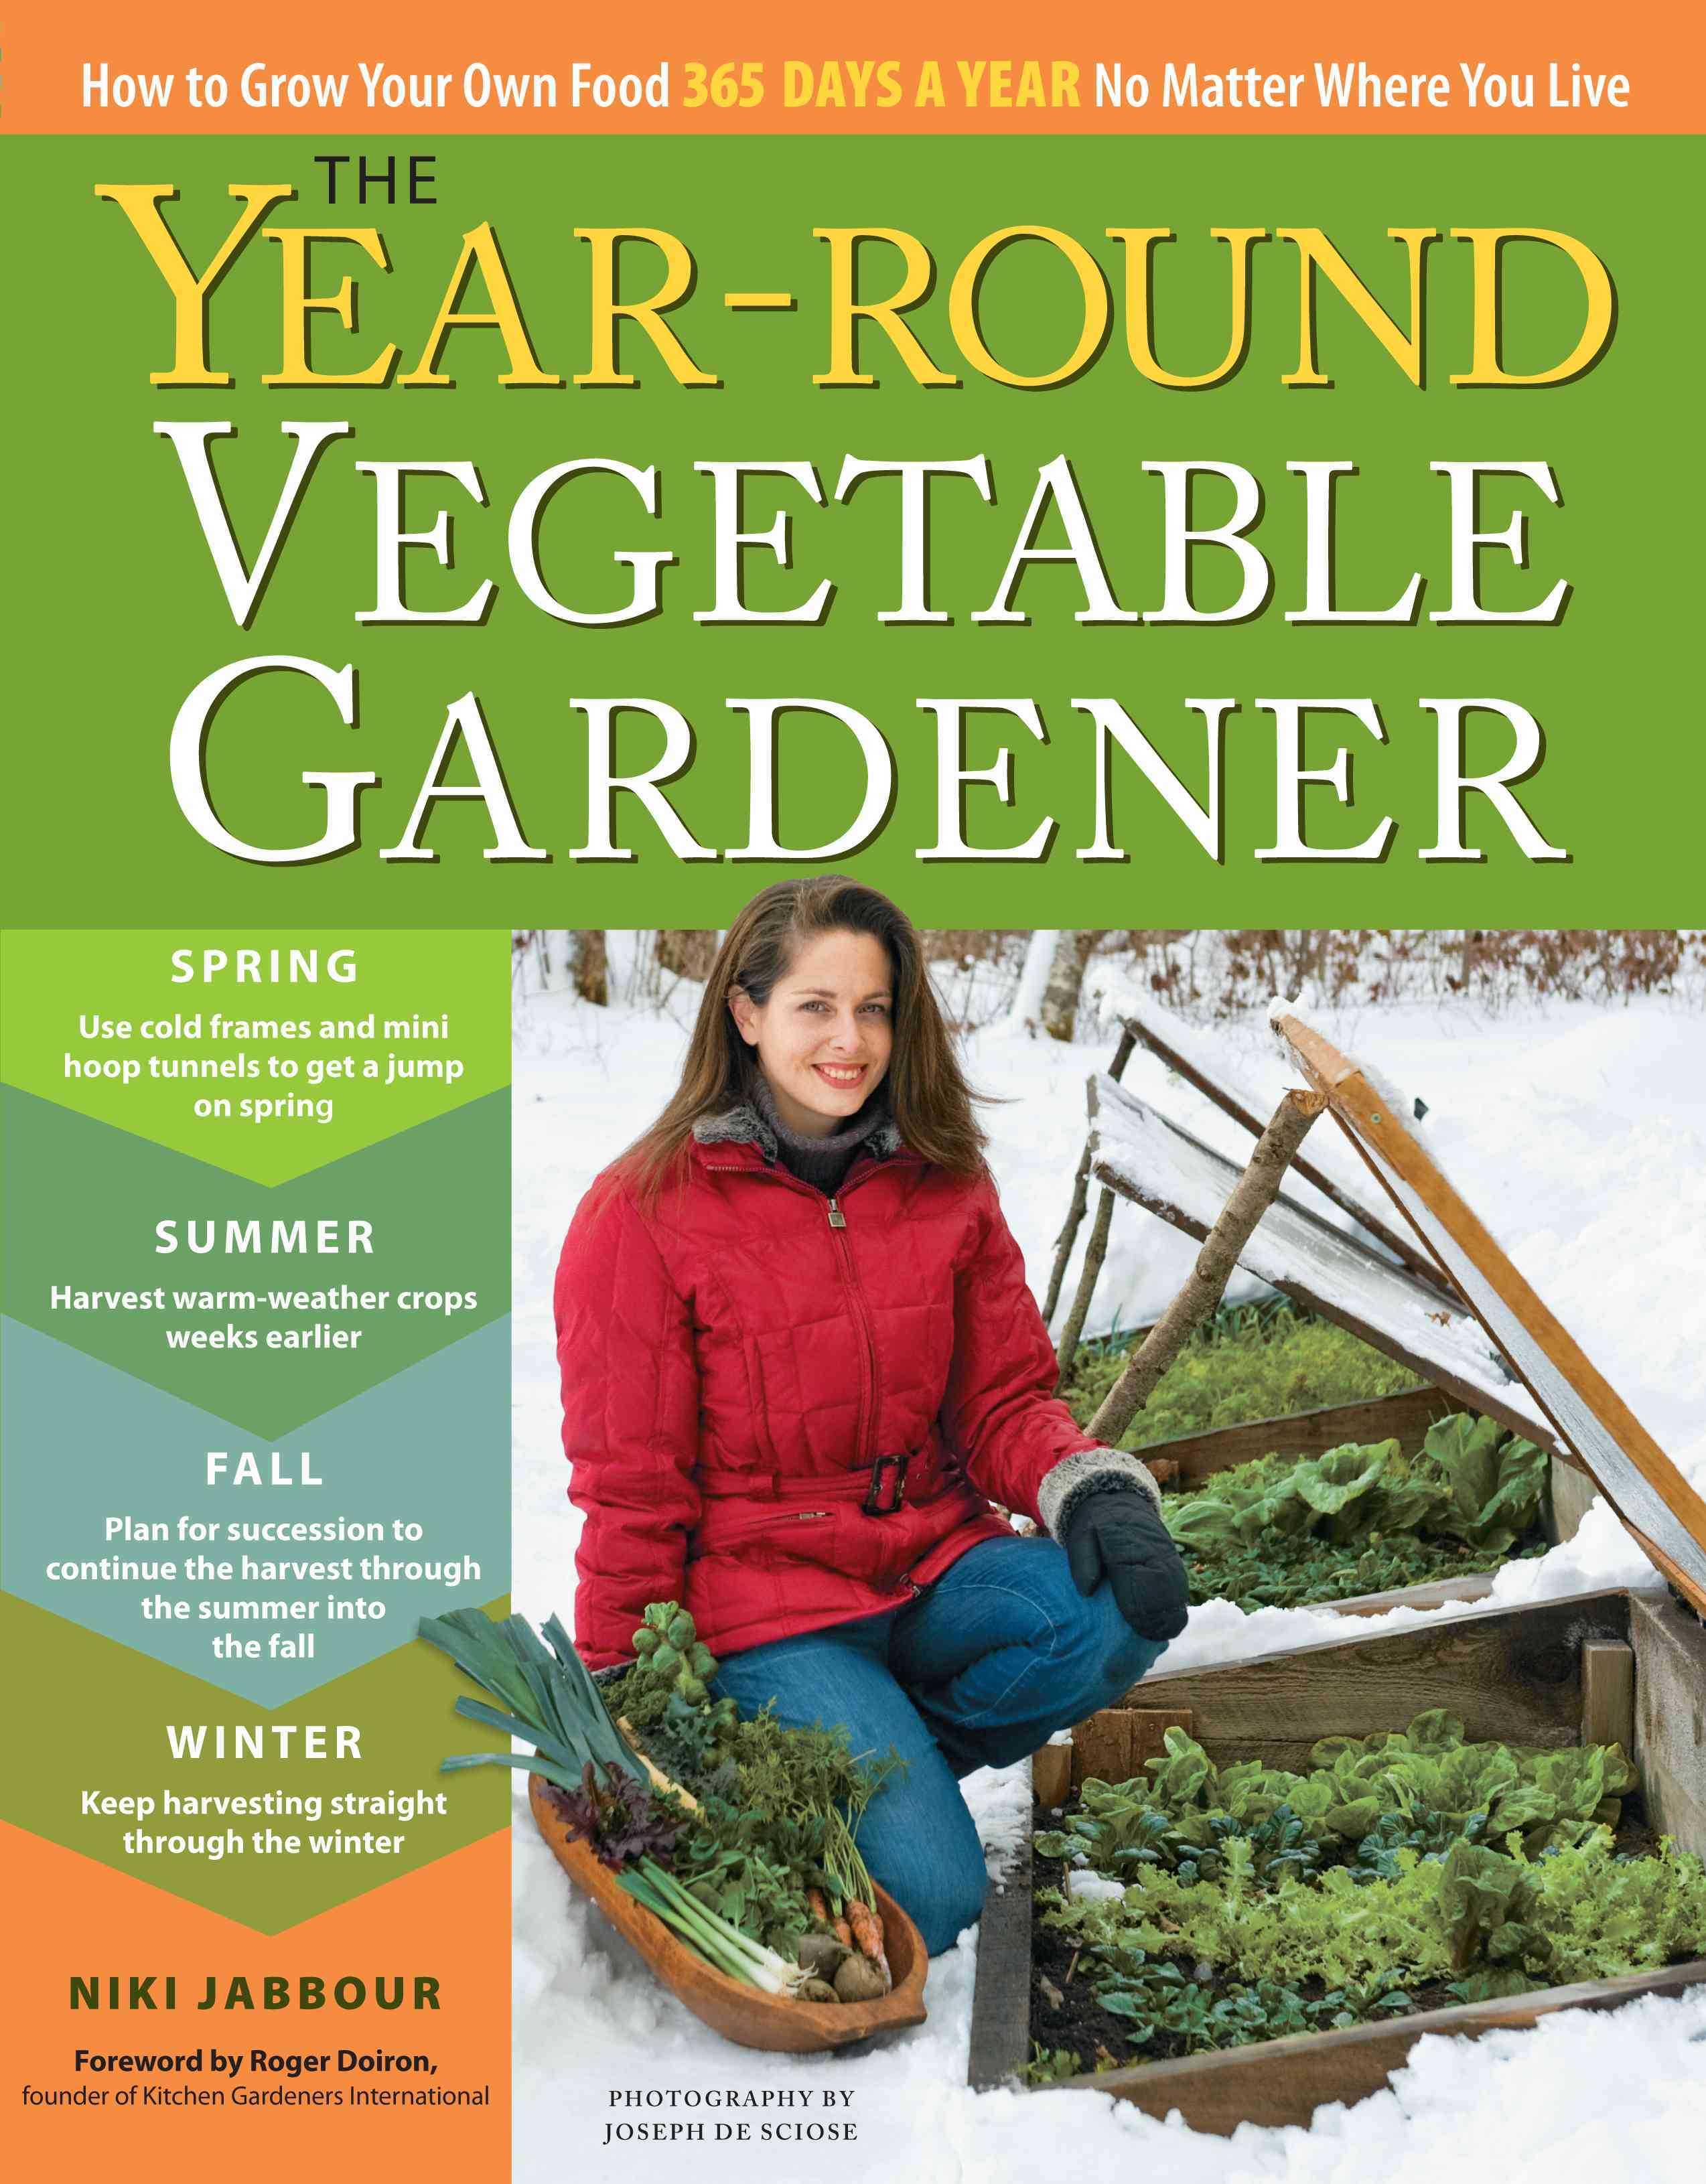 Year-Round Vegetable Gardener: How to Grow Your Own Food 365 Days a Year No Matter Where You Live (Paperback)